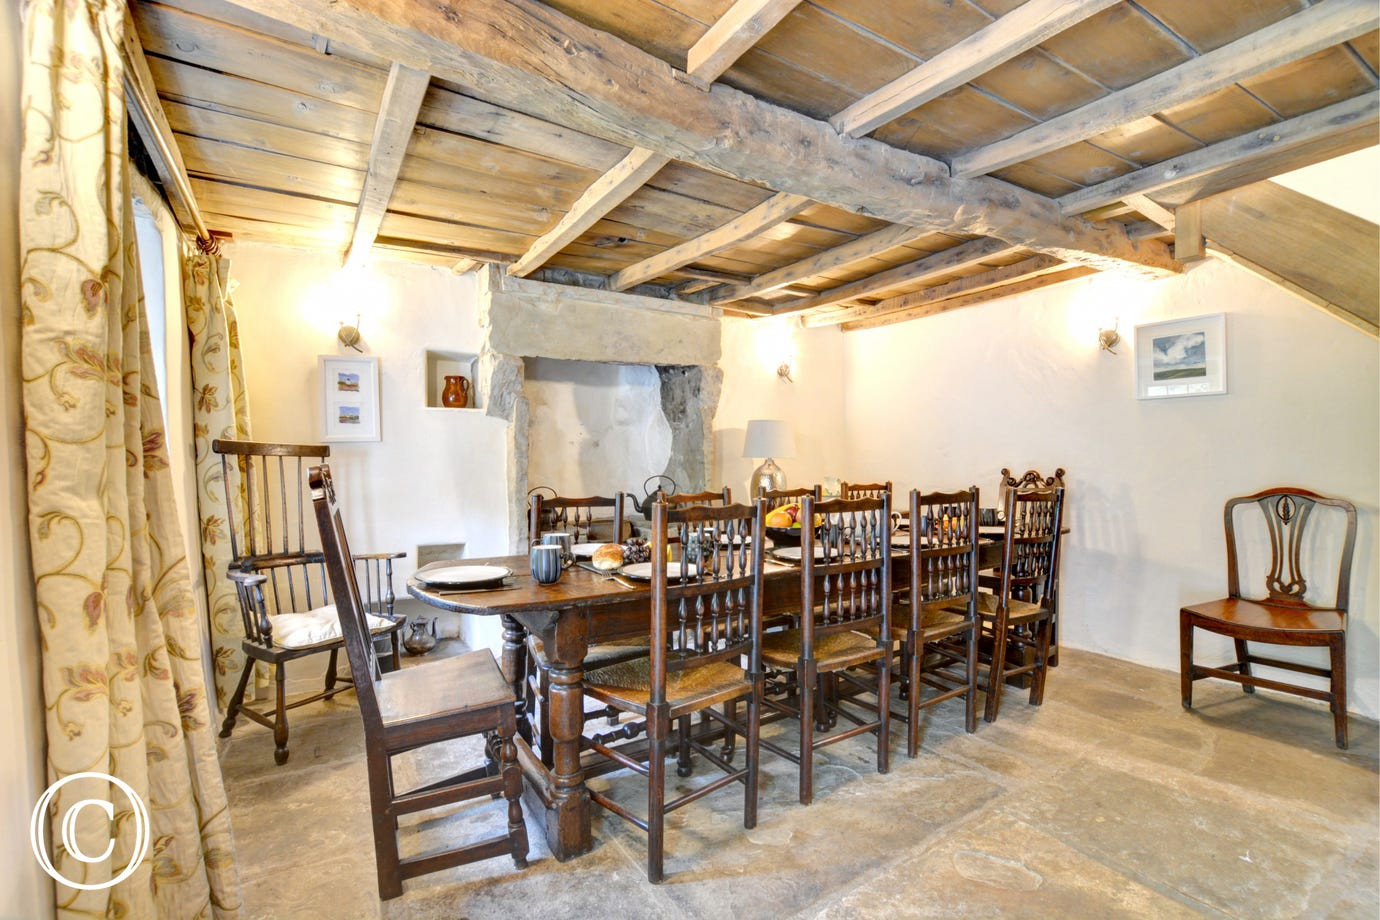 The characterful dining room is perfect for special occasions.